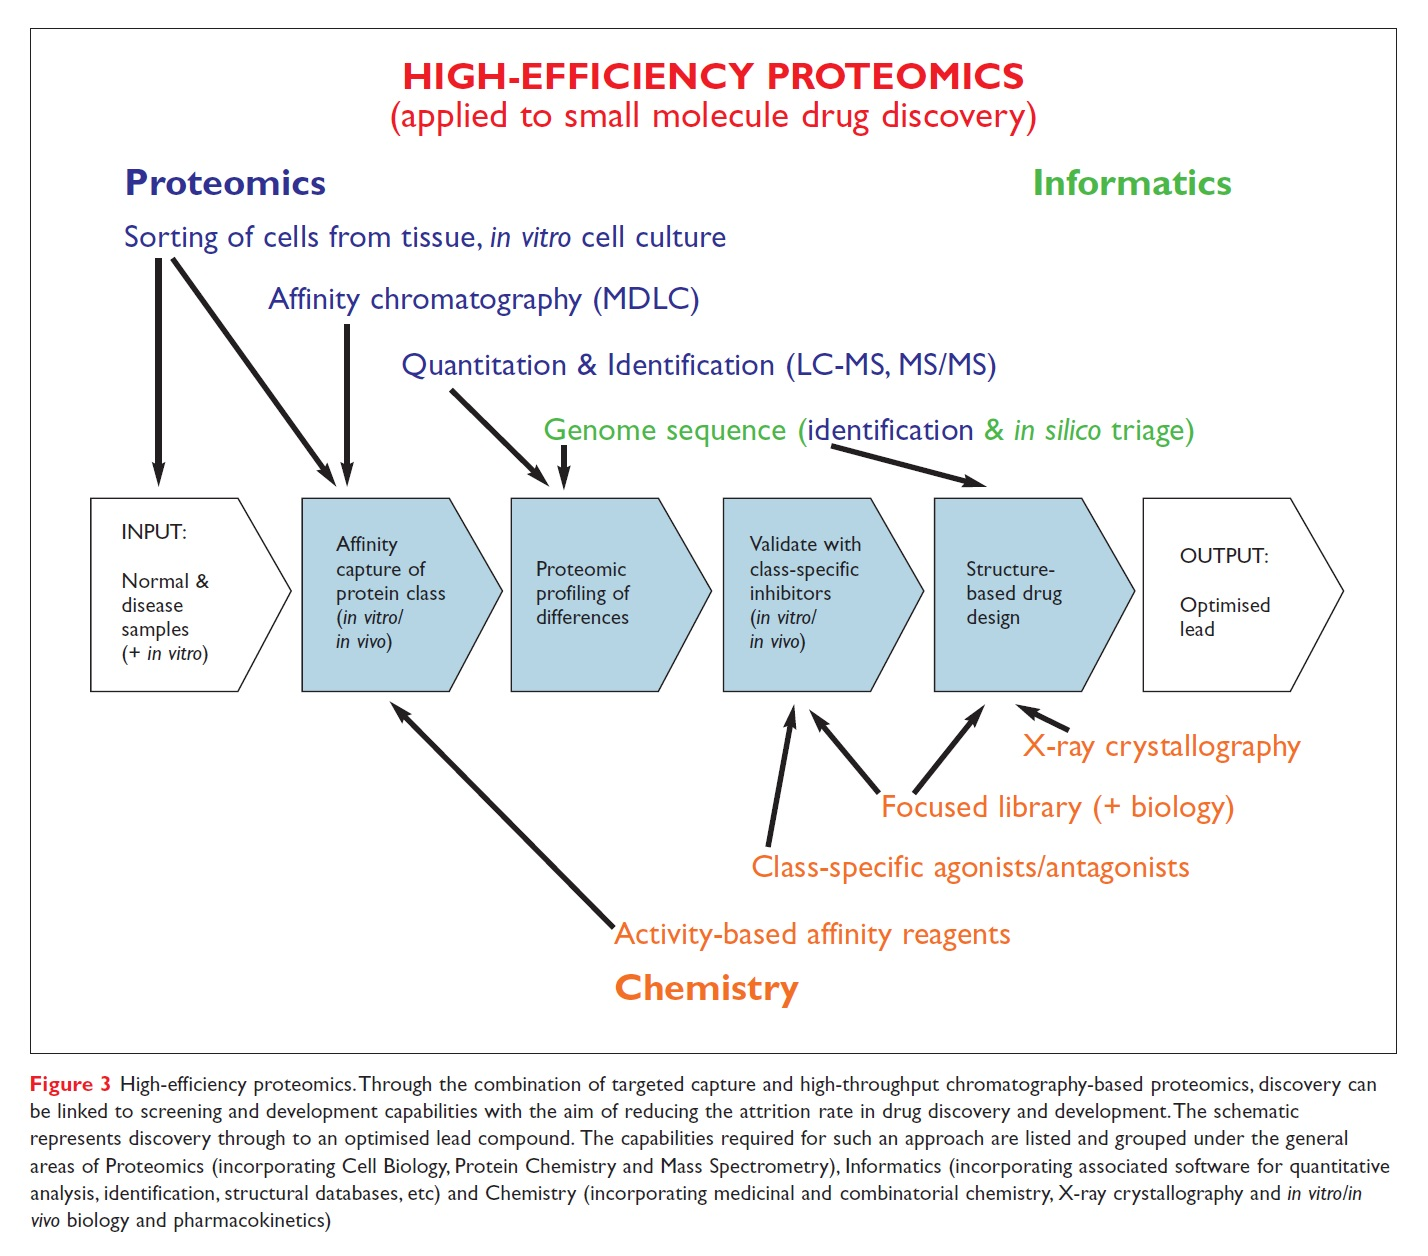 Figure 3 High efficiency proteomics applied to small molecule drug discovery